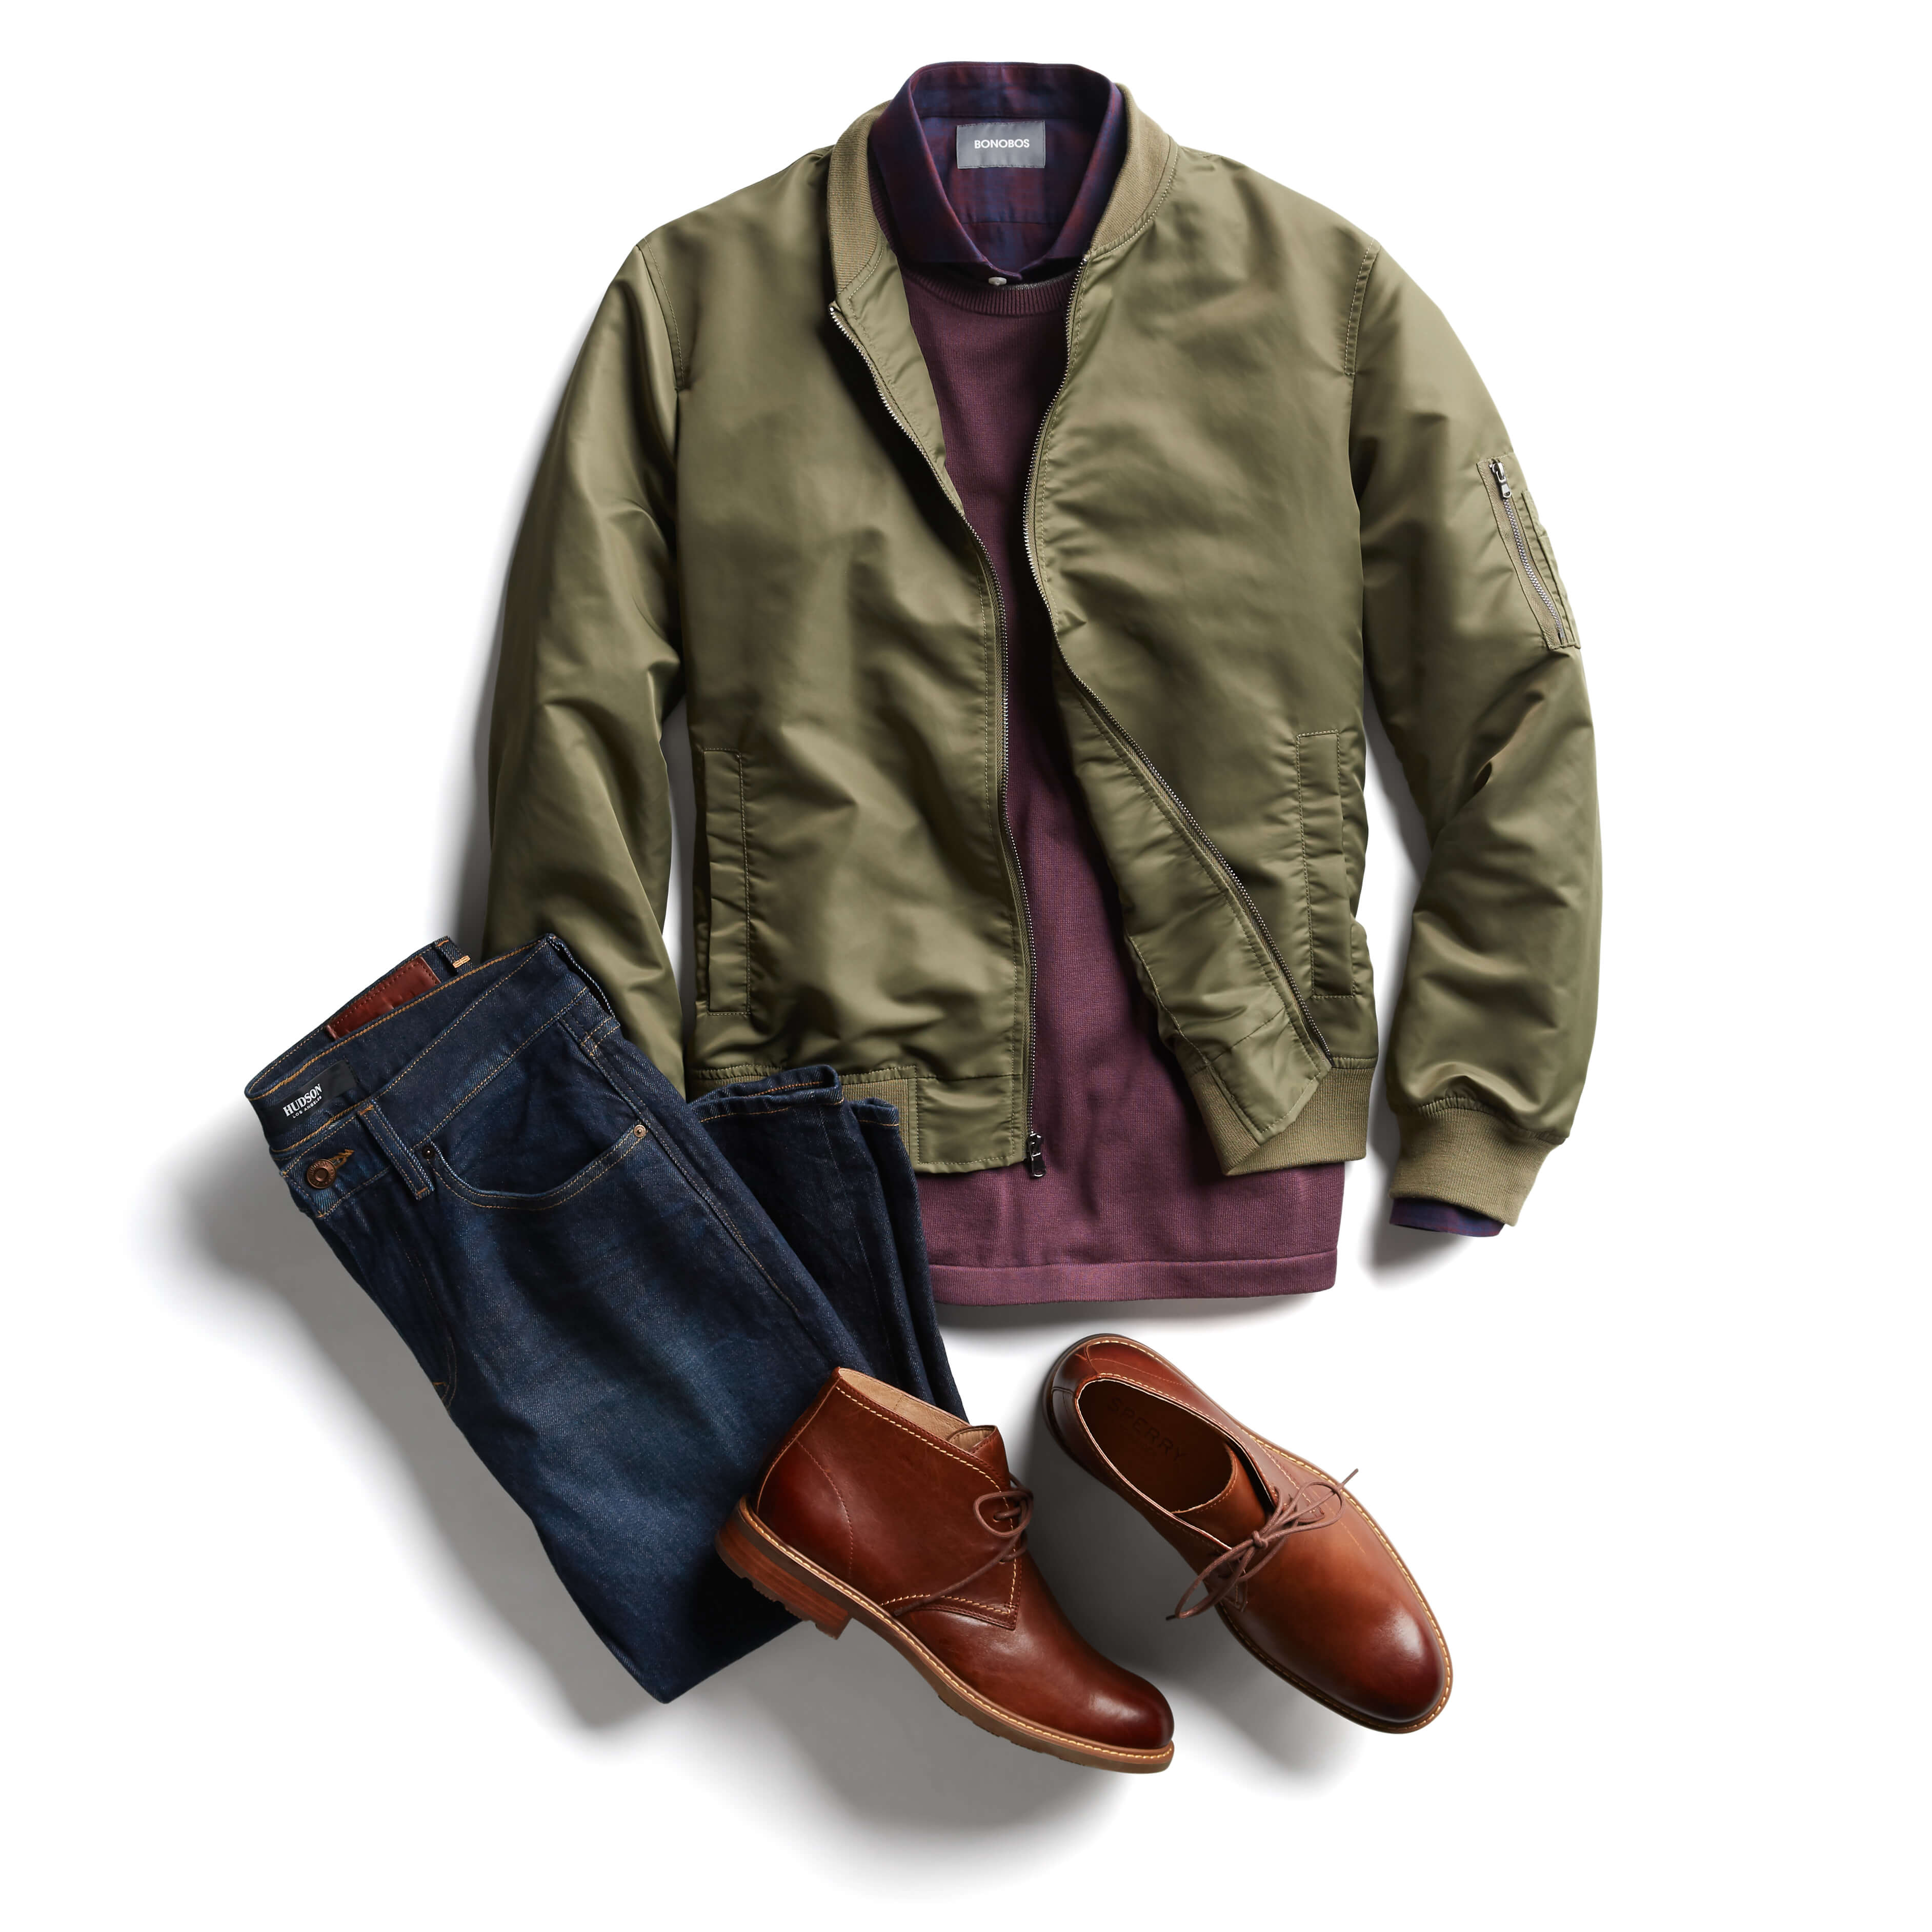 What Colors Pair With Brown Shoes?